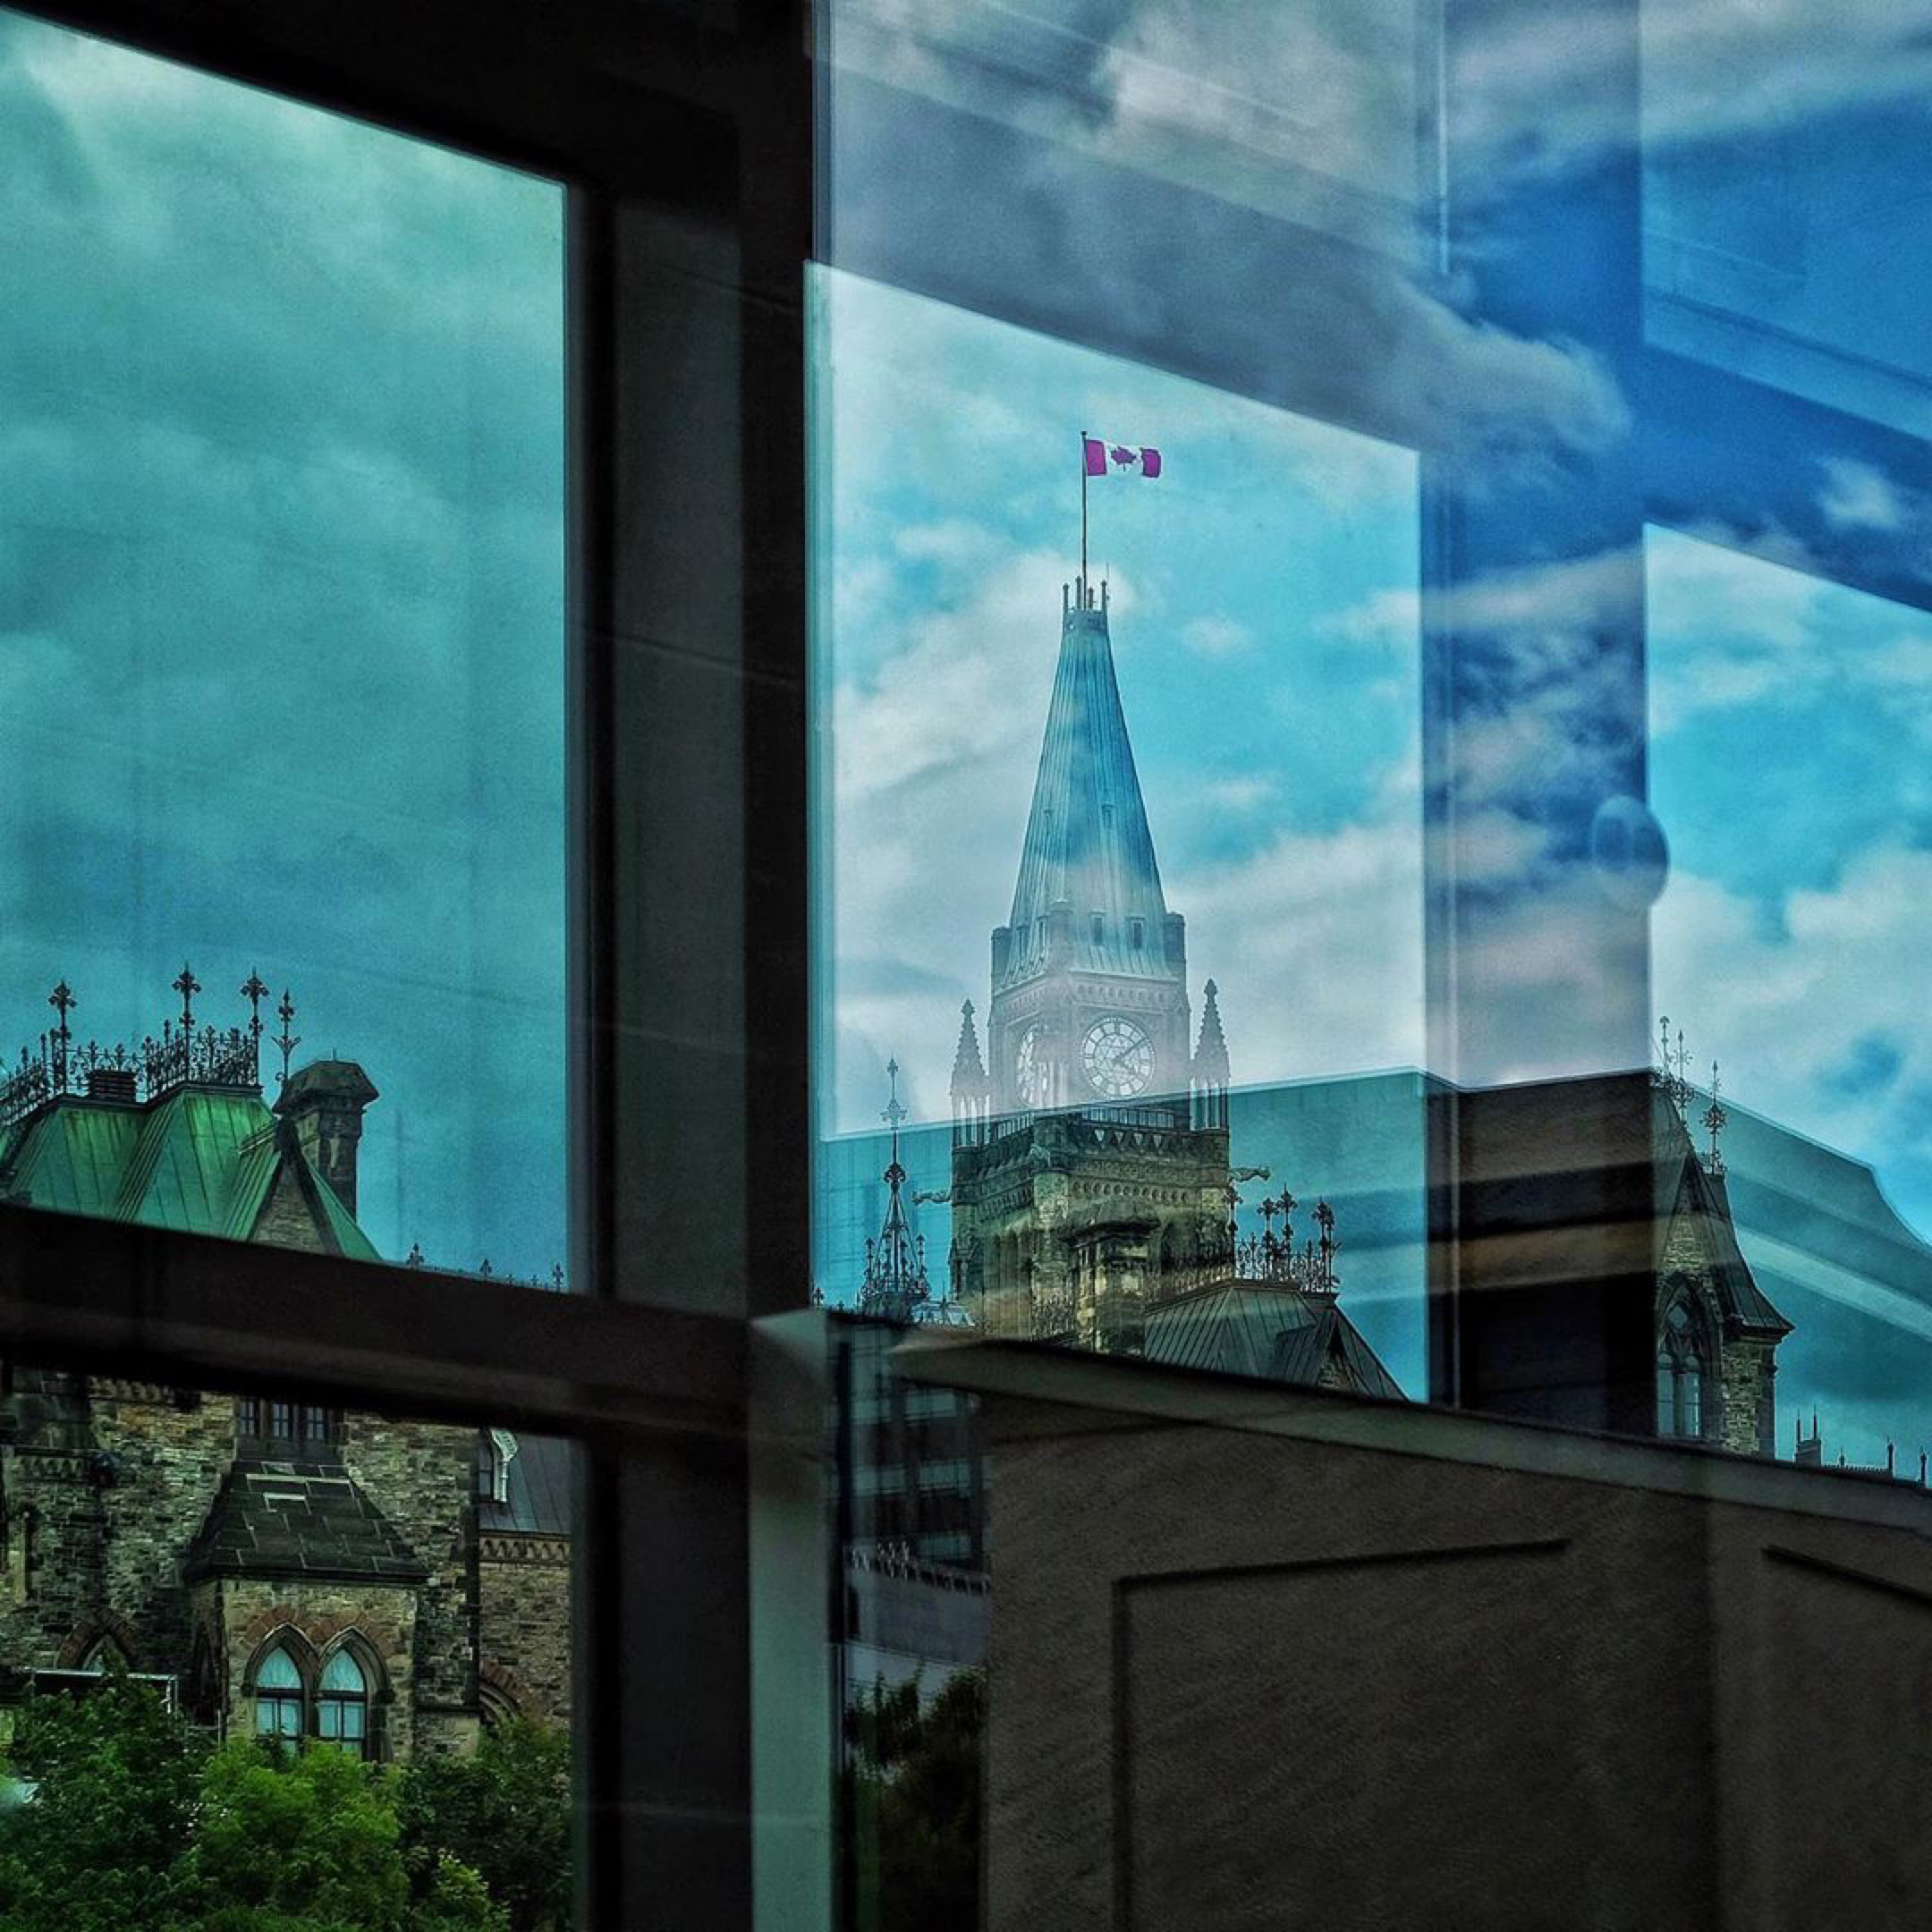 loveOttawa_PeaceTowerReflection.jpg